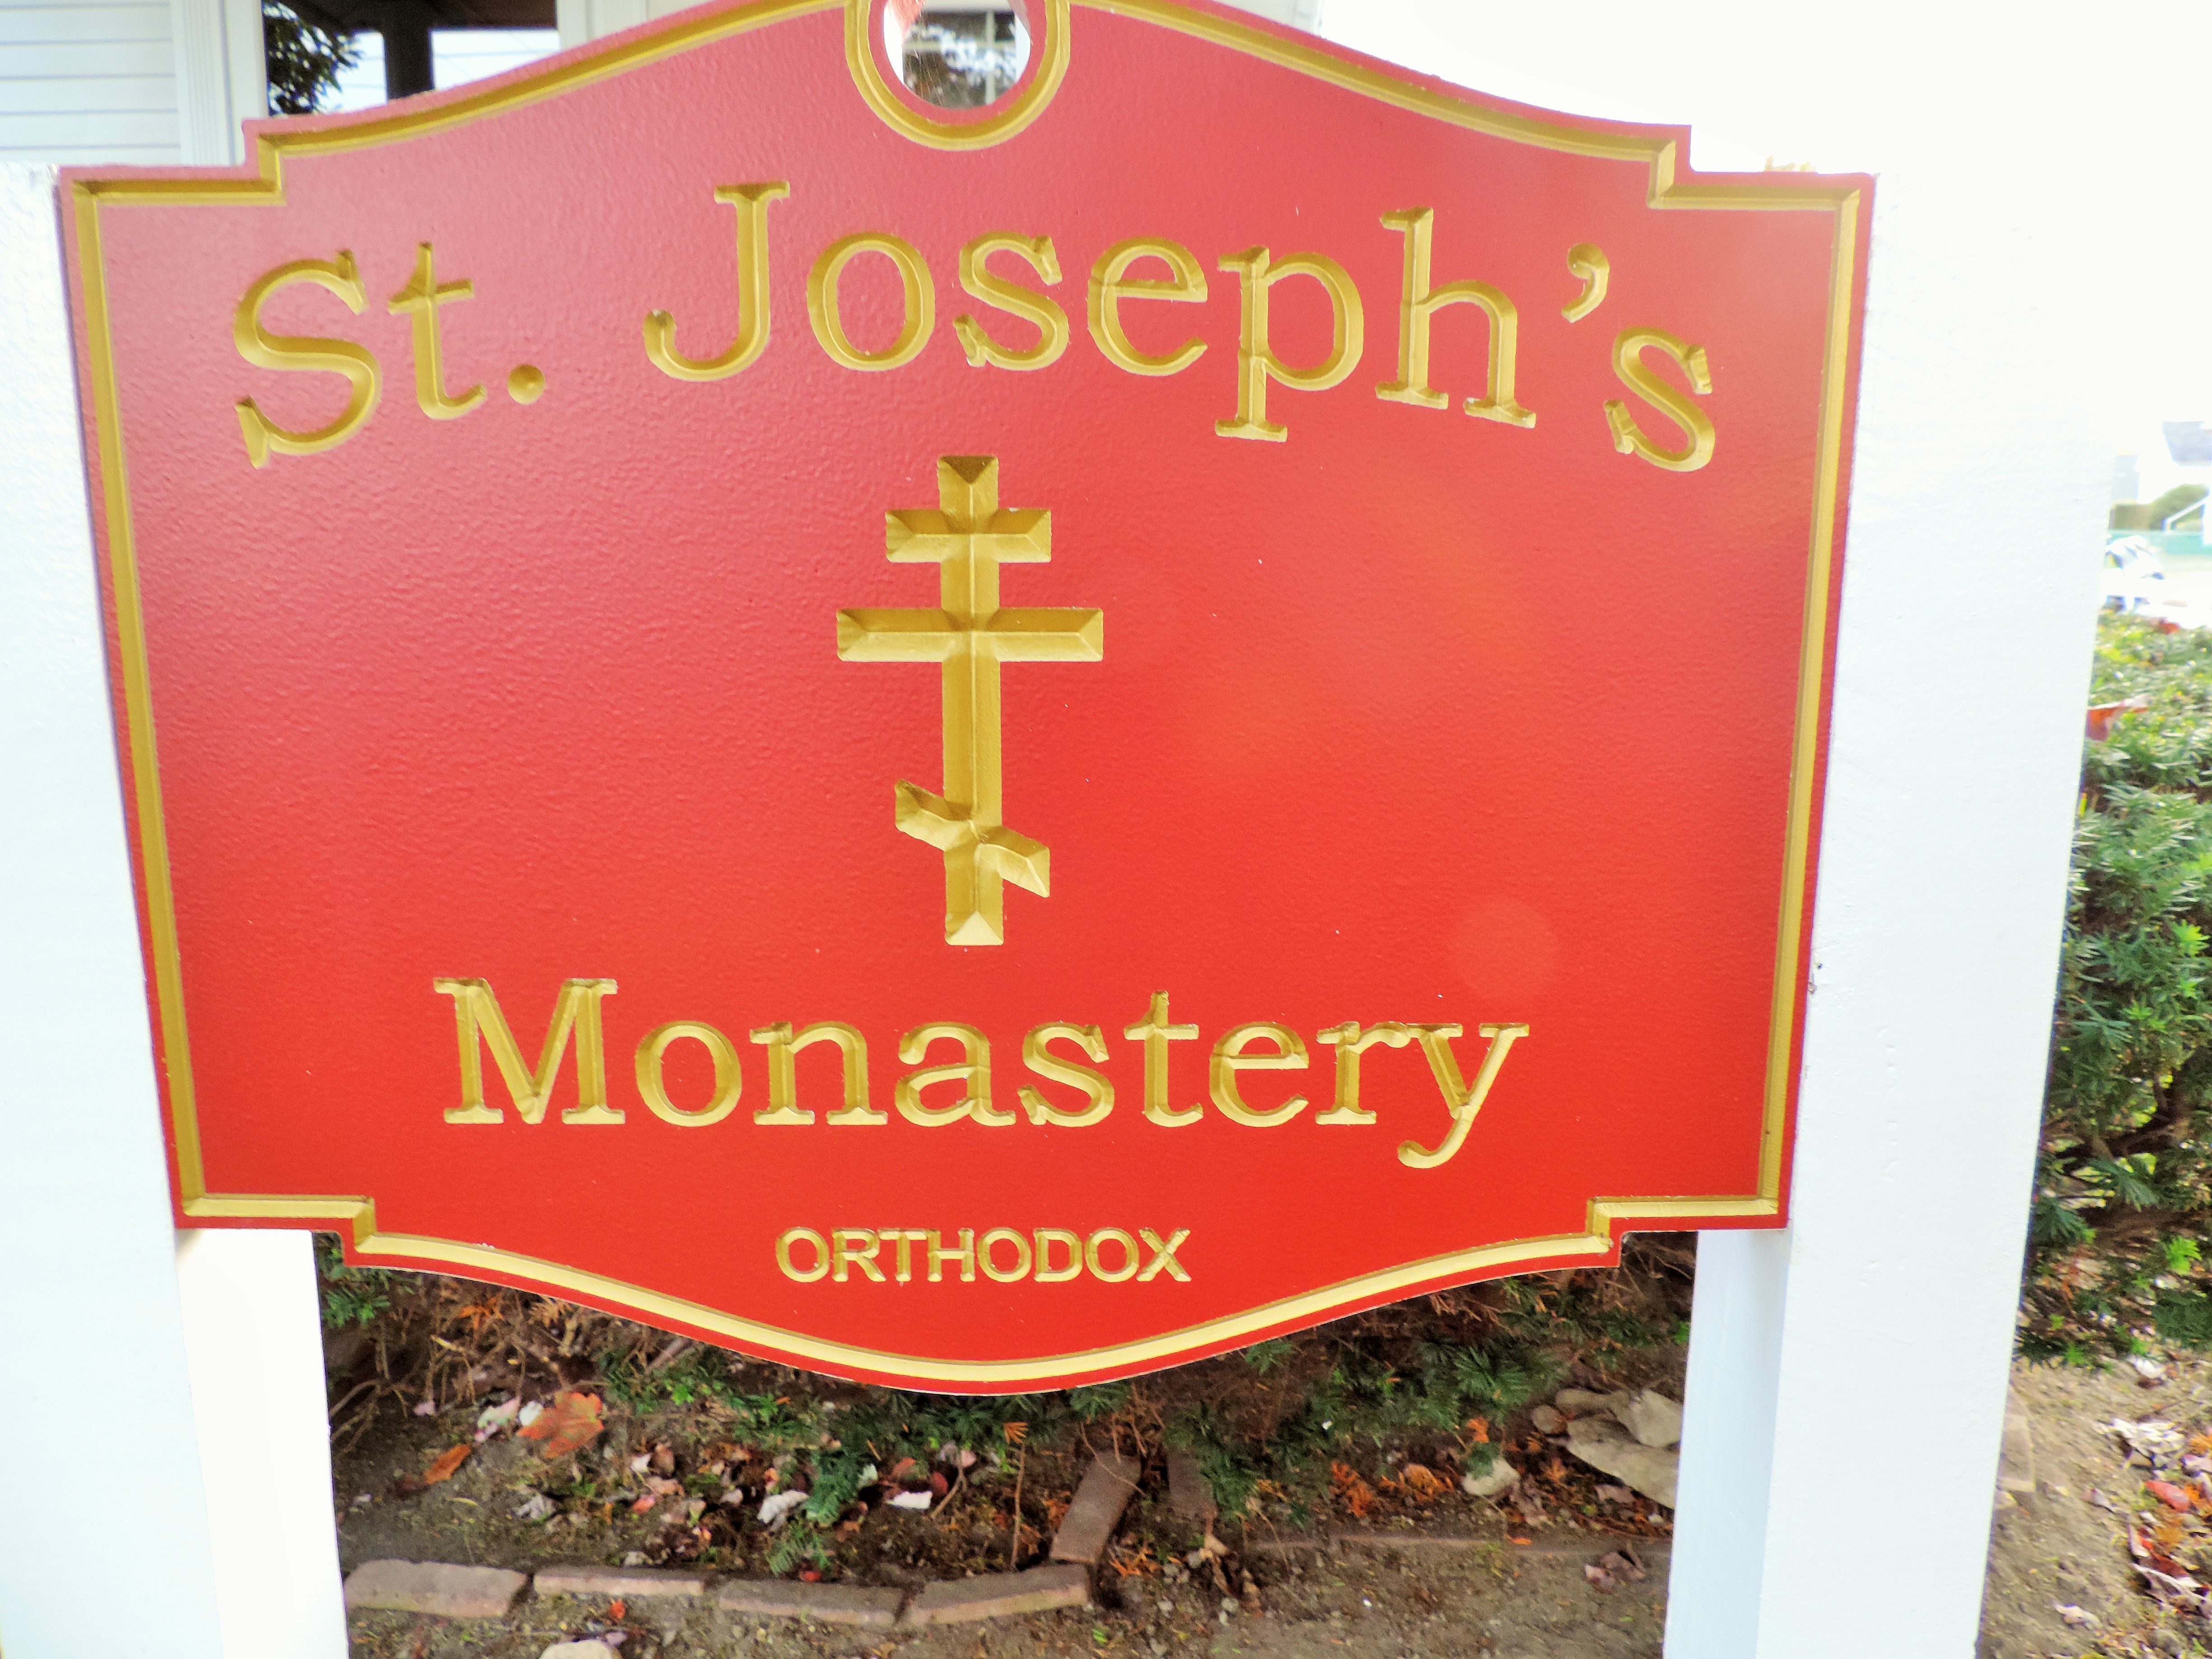 The Monastery sign